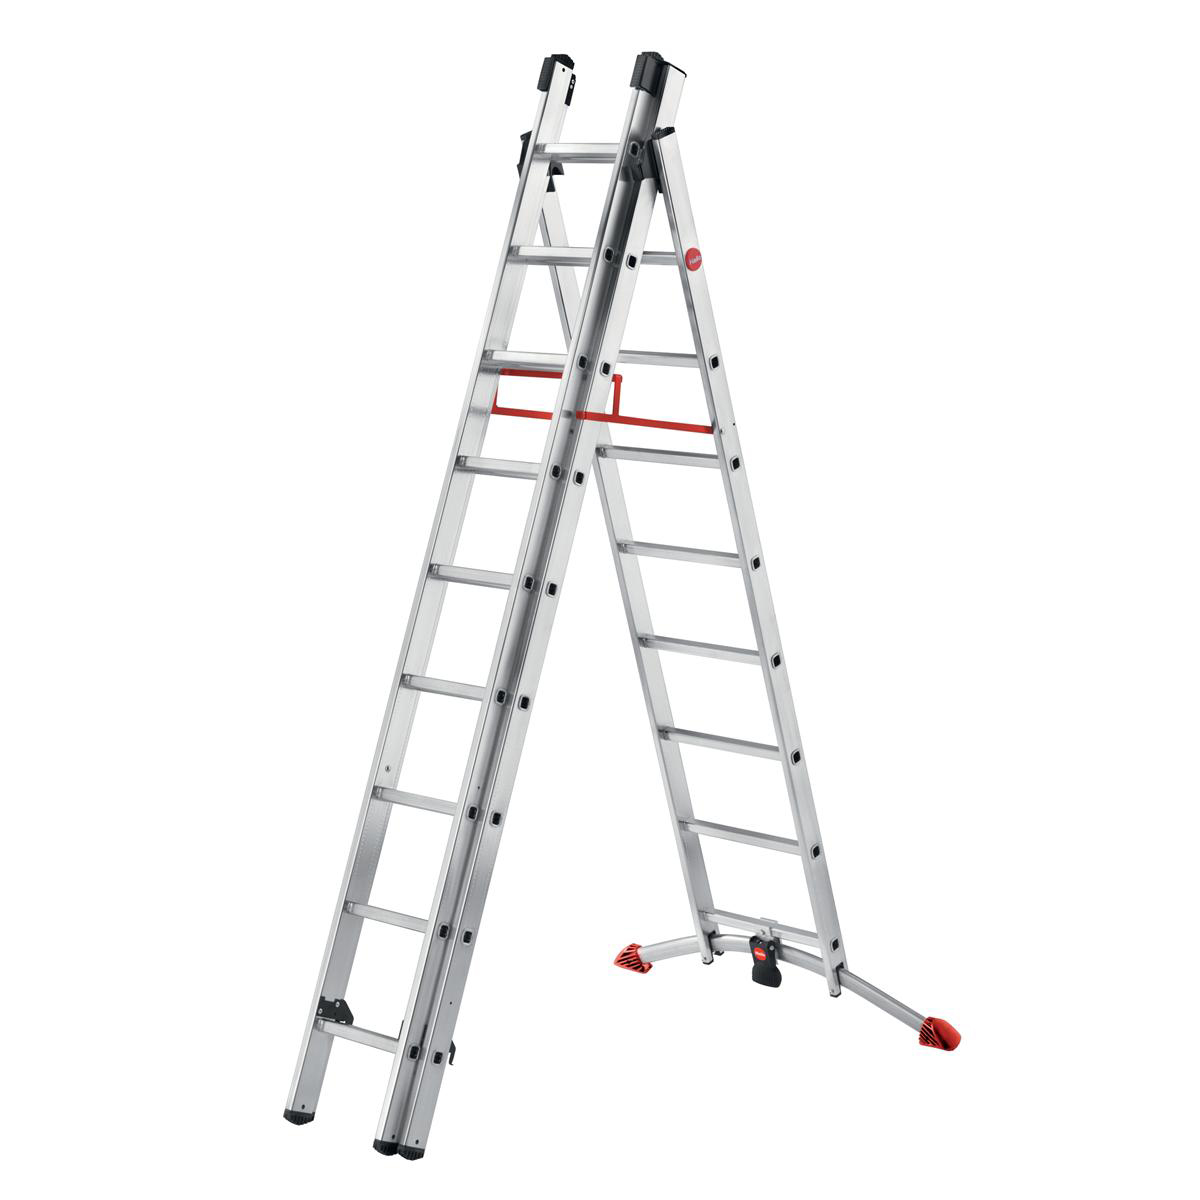 Steps Combi Ladder 3 Section Capacity 150kg Rungs 2x9 and 1x8 for H6.7m 21.7kg Aluminium